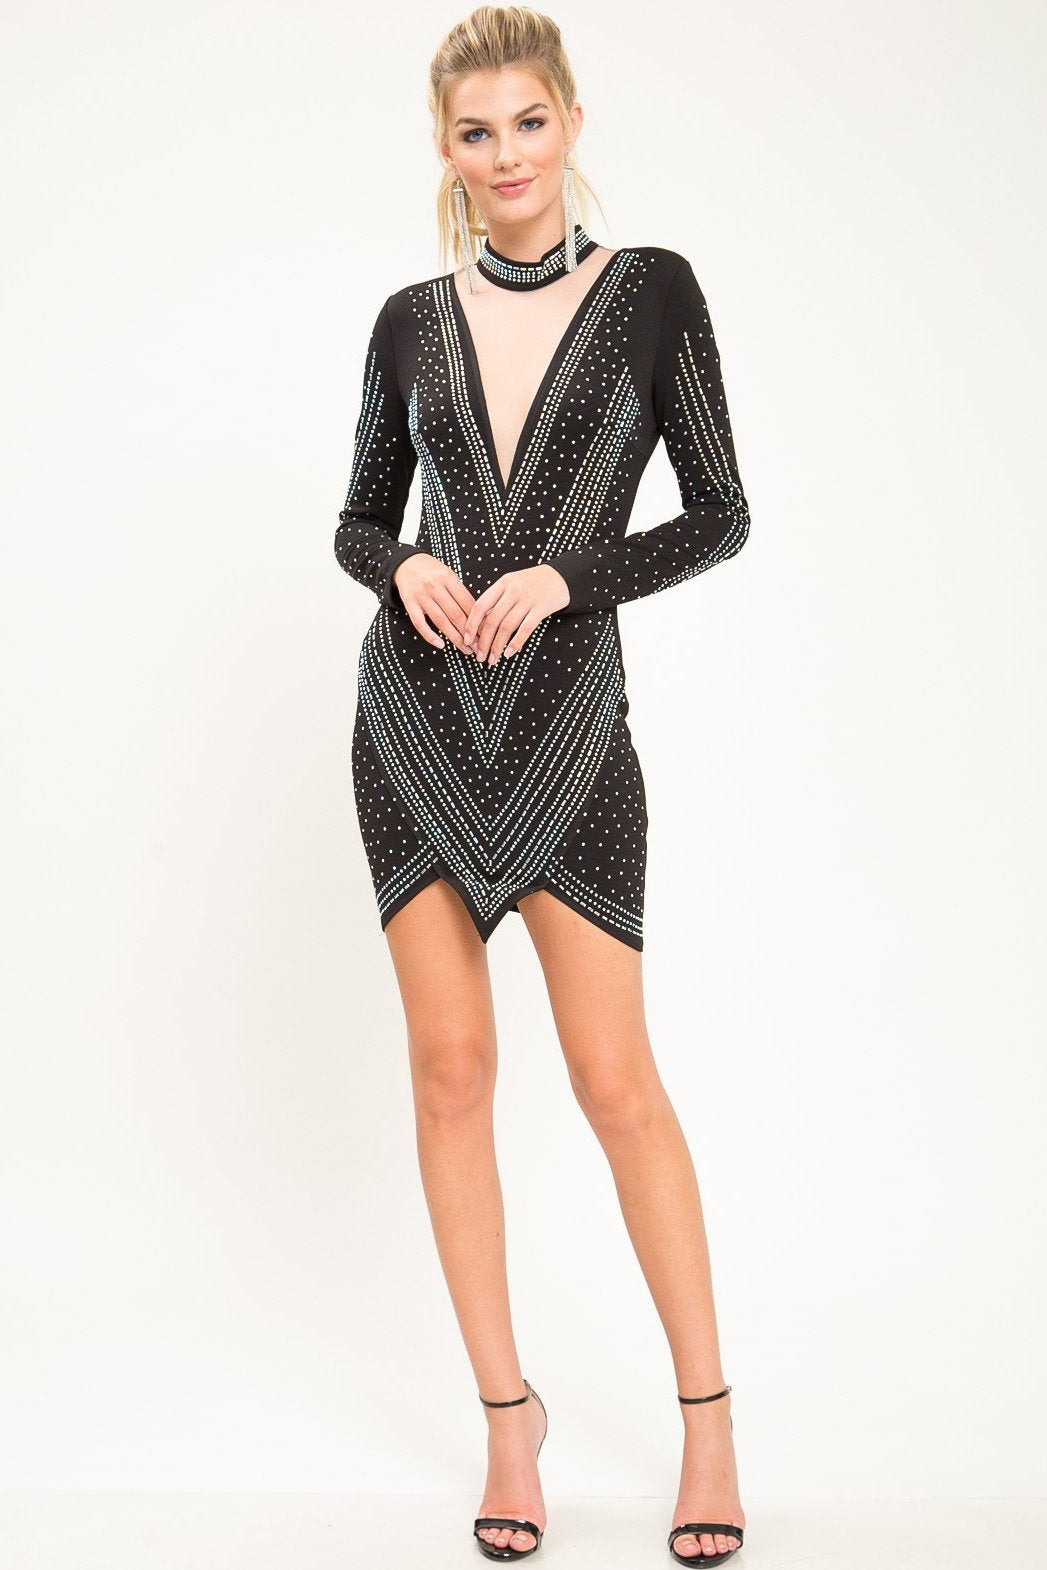 No Tears Rhinestone Mini Dress - Geegeebae